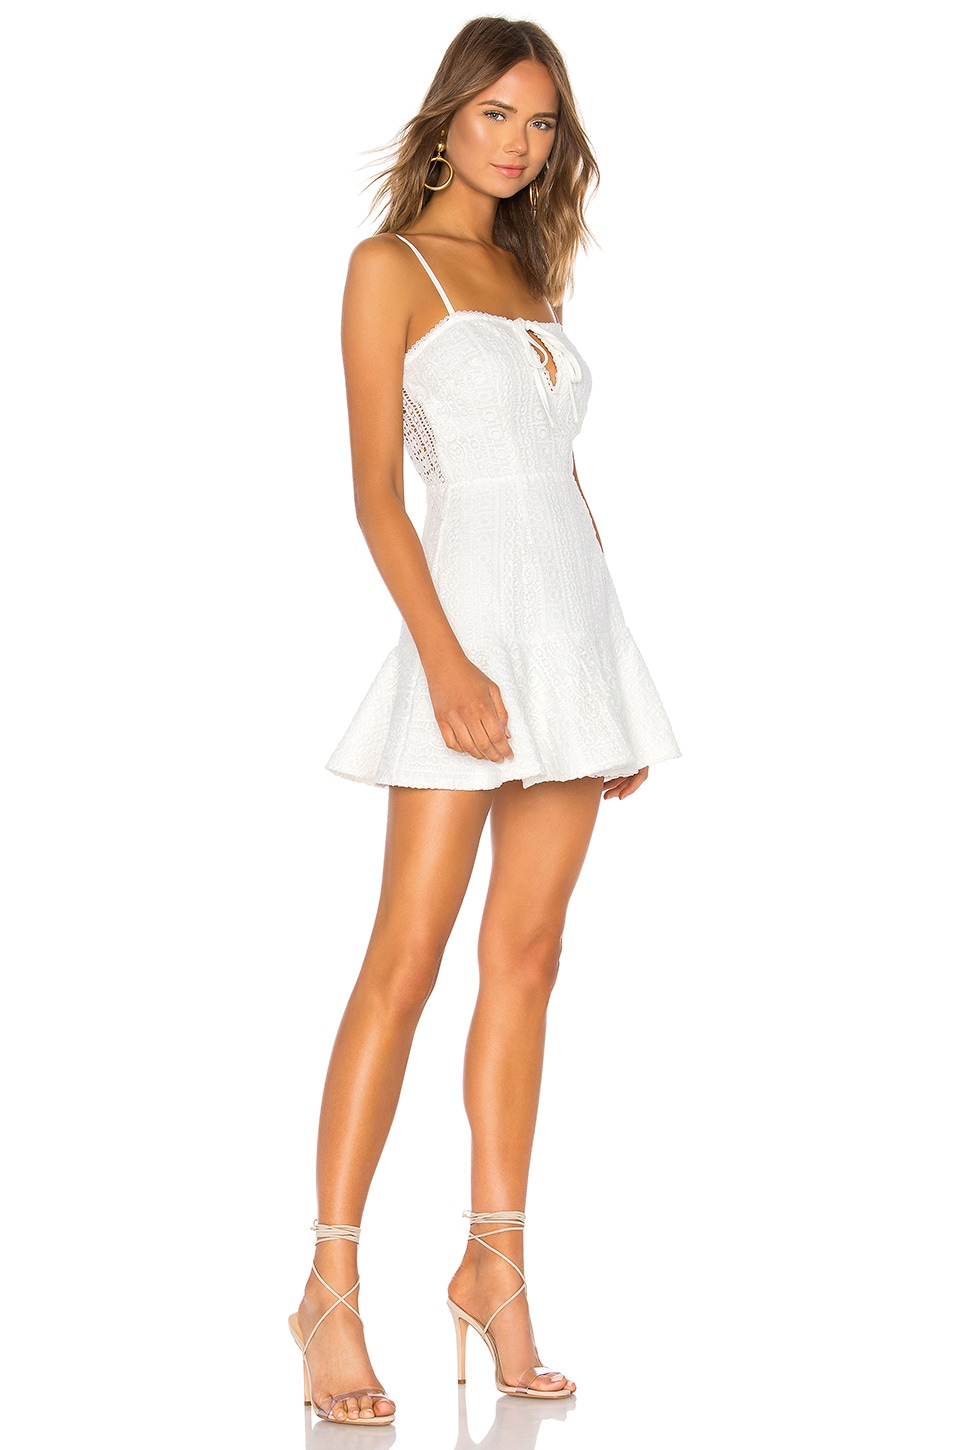 Del Crochet Keyhole Dress             superdown                                                                                                       CA$ 99.24 18